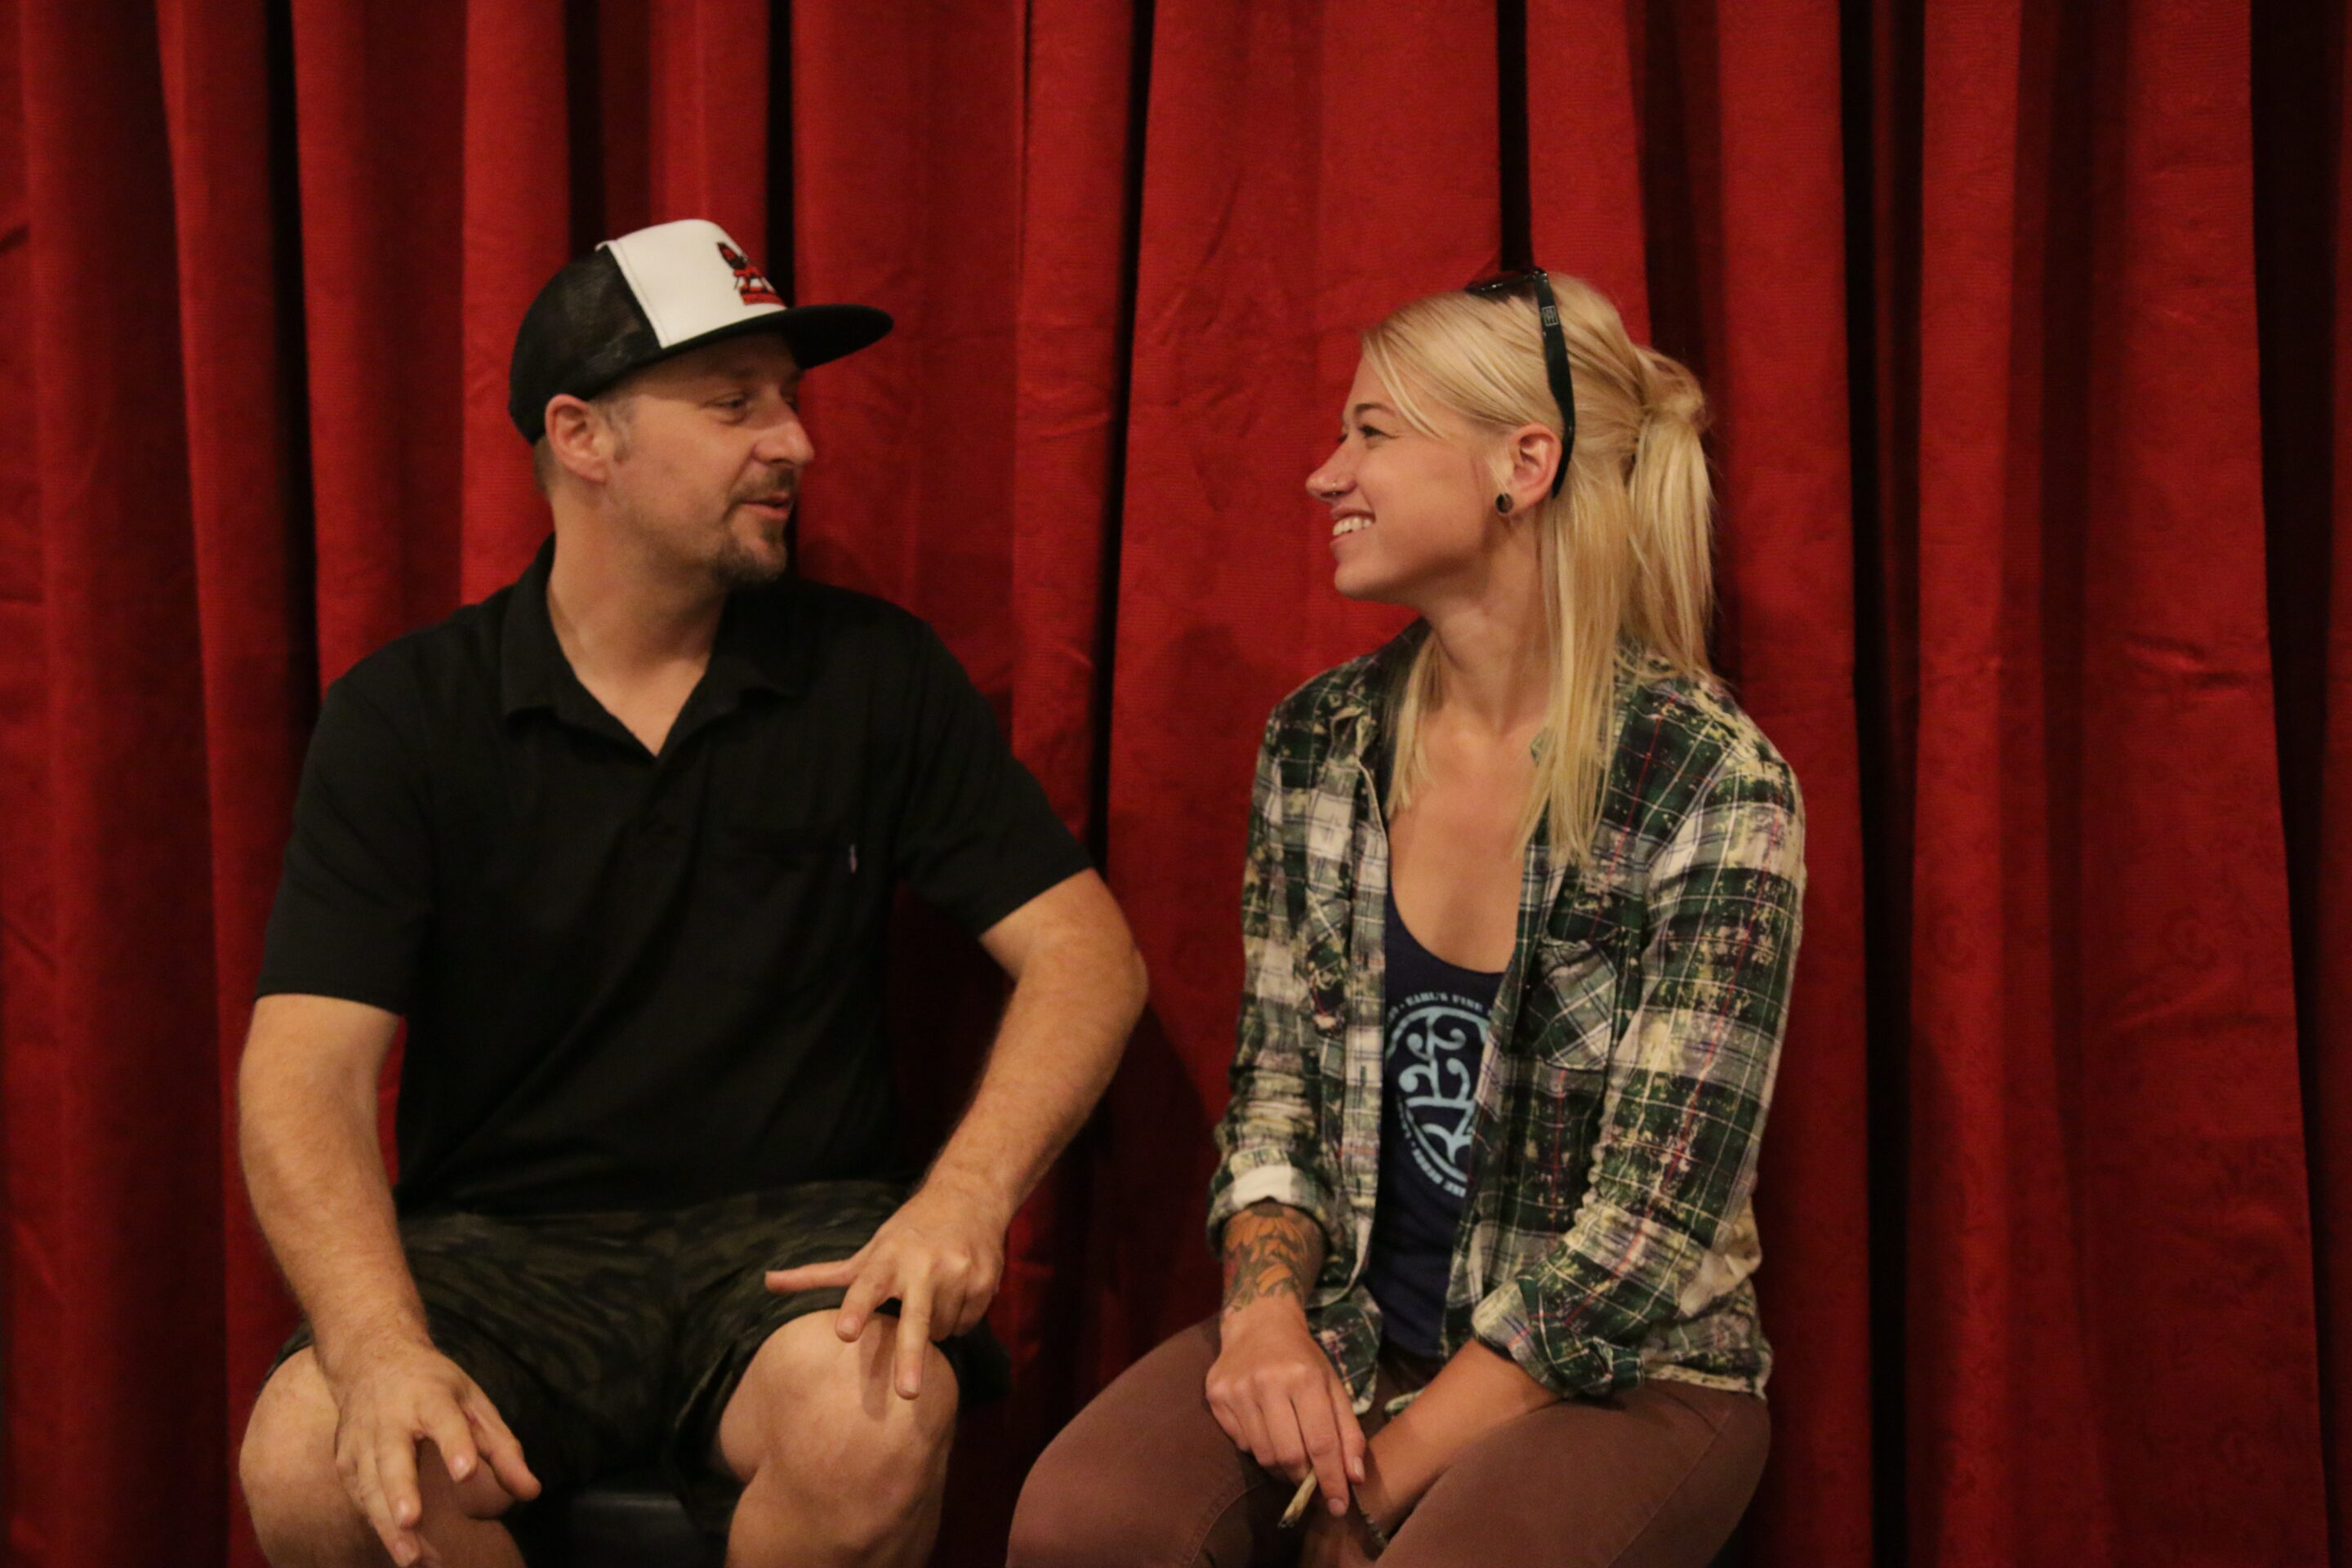 Heather from Earl's leadville stops by to talk with Chip Baker about being a grower, her favorite strains and women in cannabis.